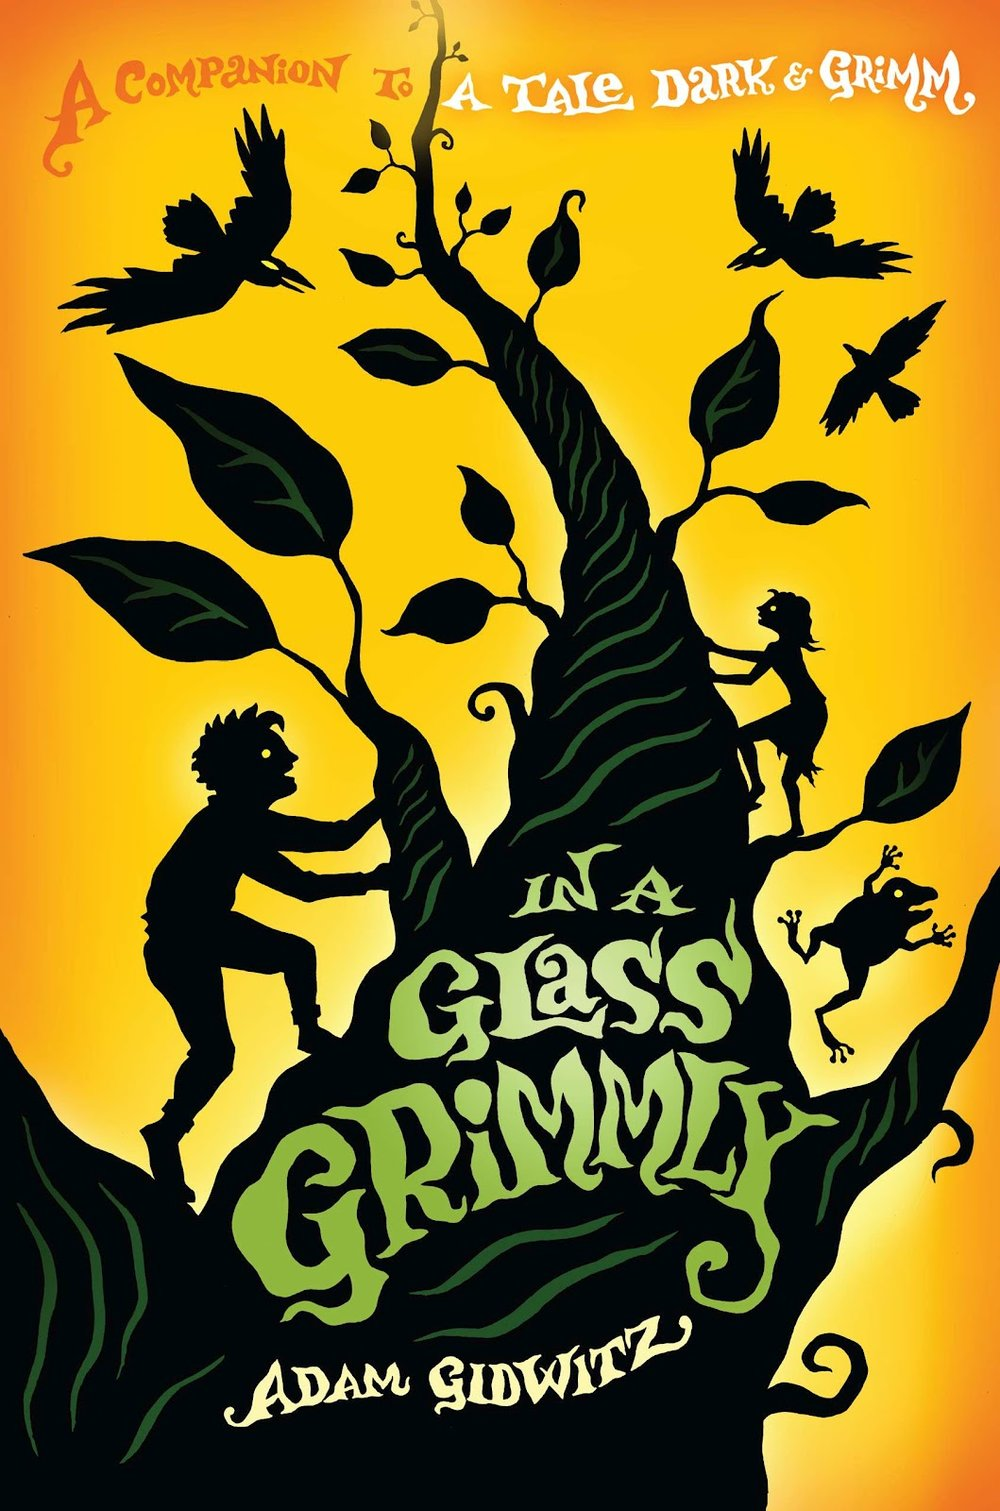 gidwitz-glass-grimmly.png